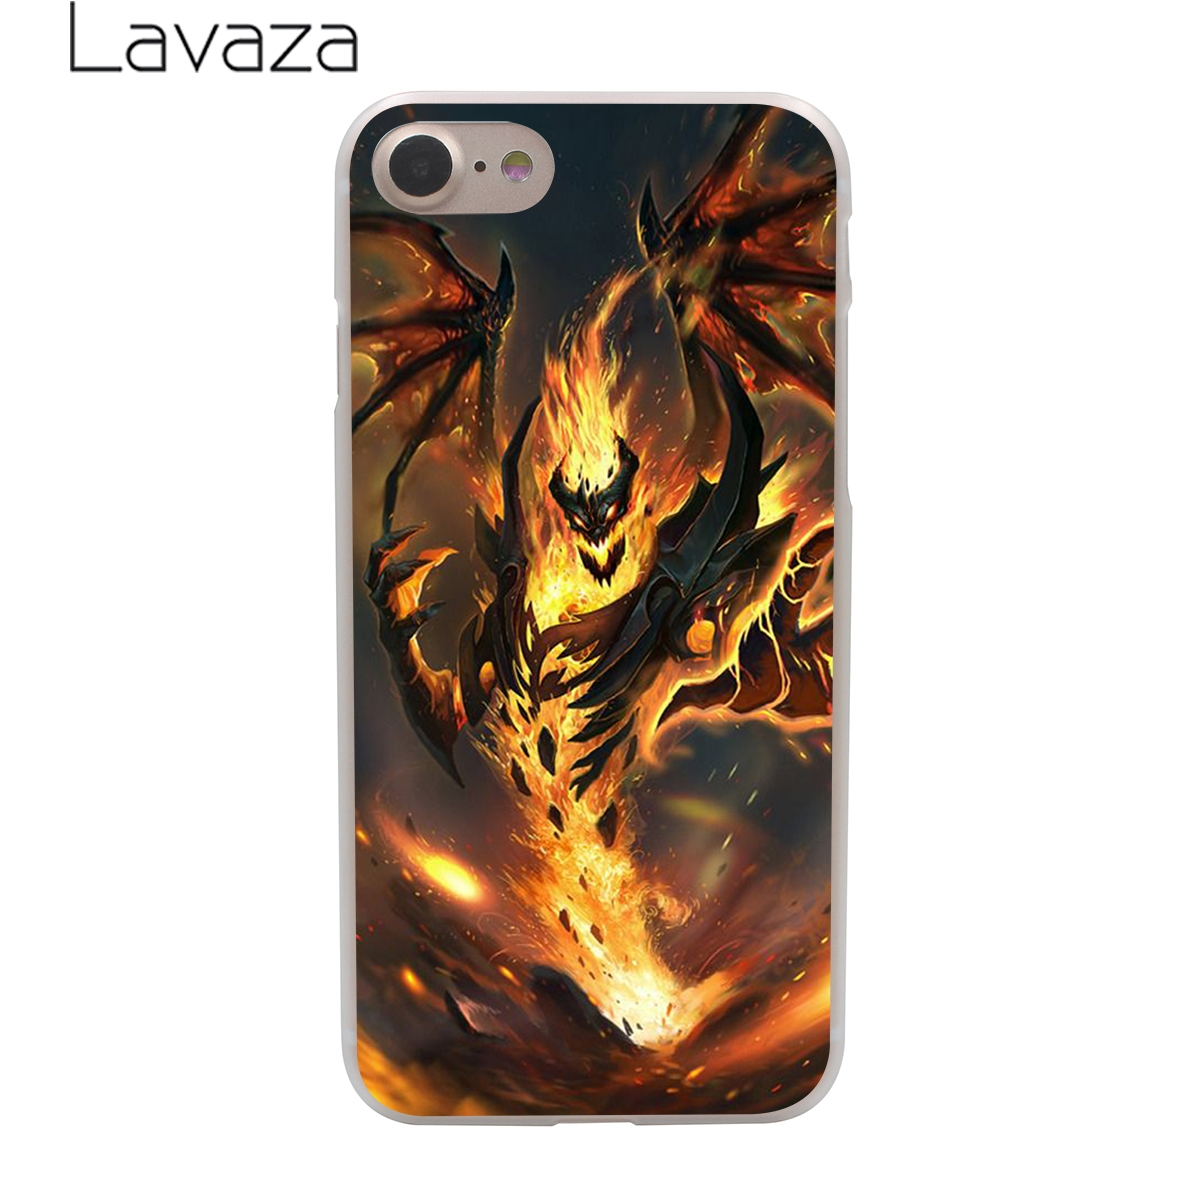 lavaza dota 2 logo hard phone cover case for apple iphone. Black Bedroom Furniture Sets. Home Design Ideas